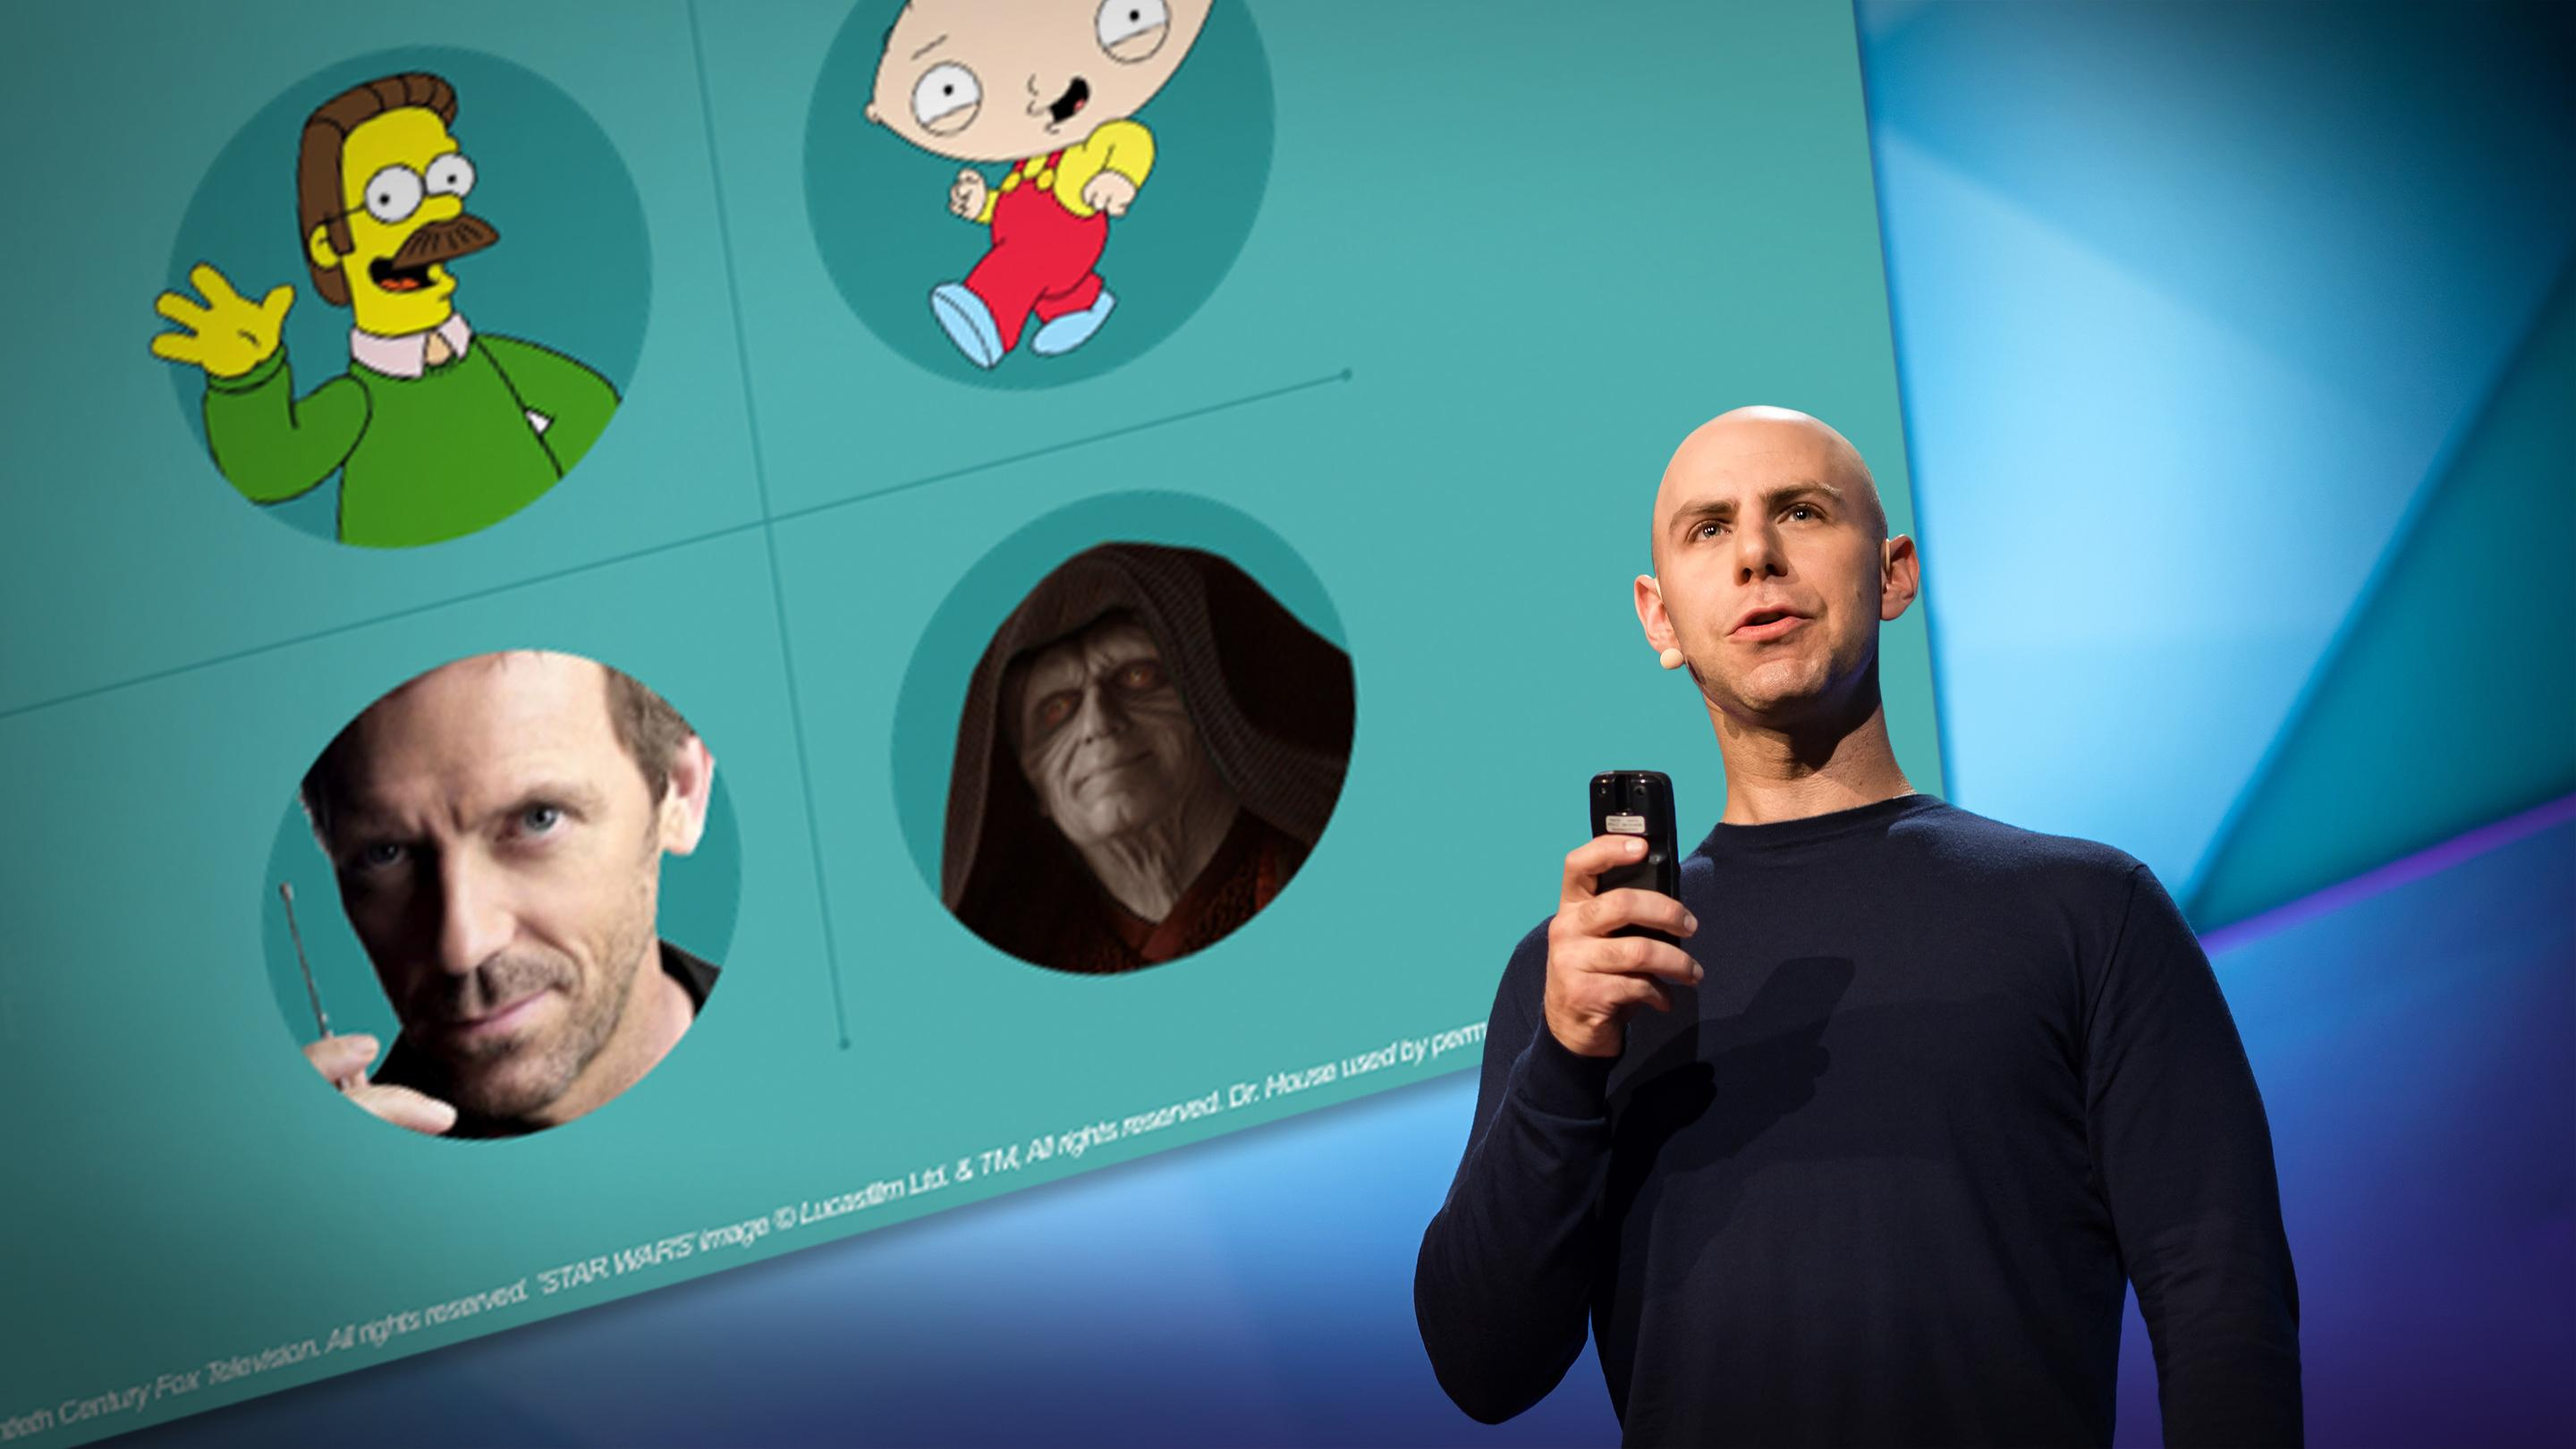 psychology topics watch com adam grant